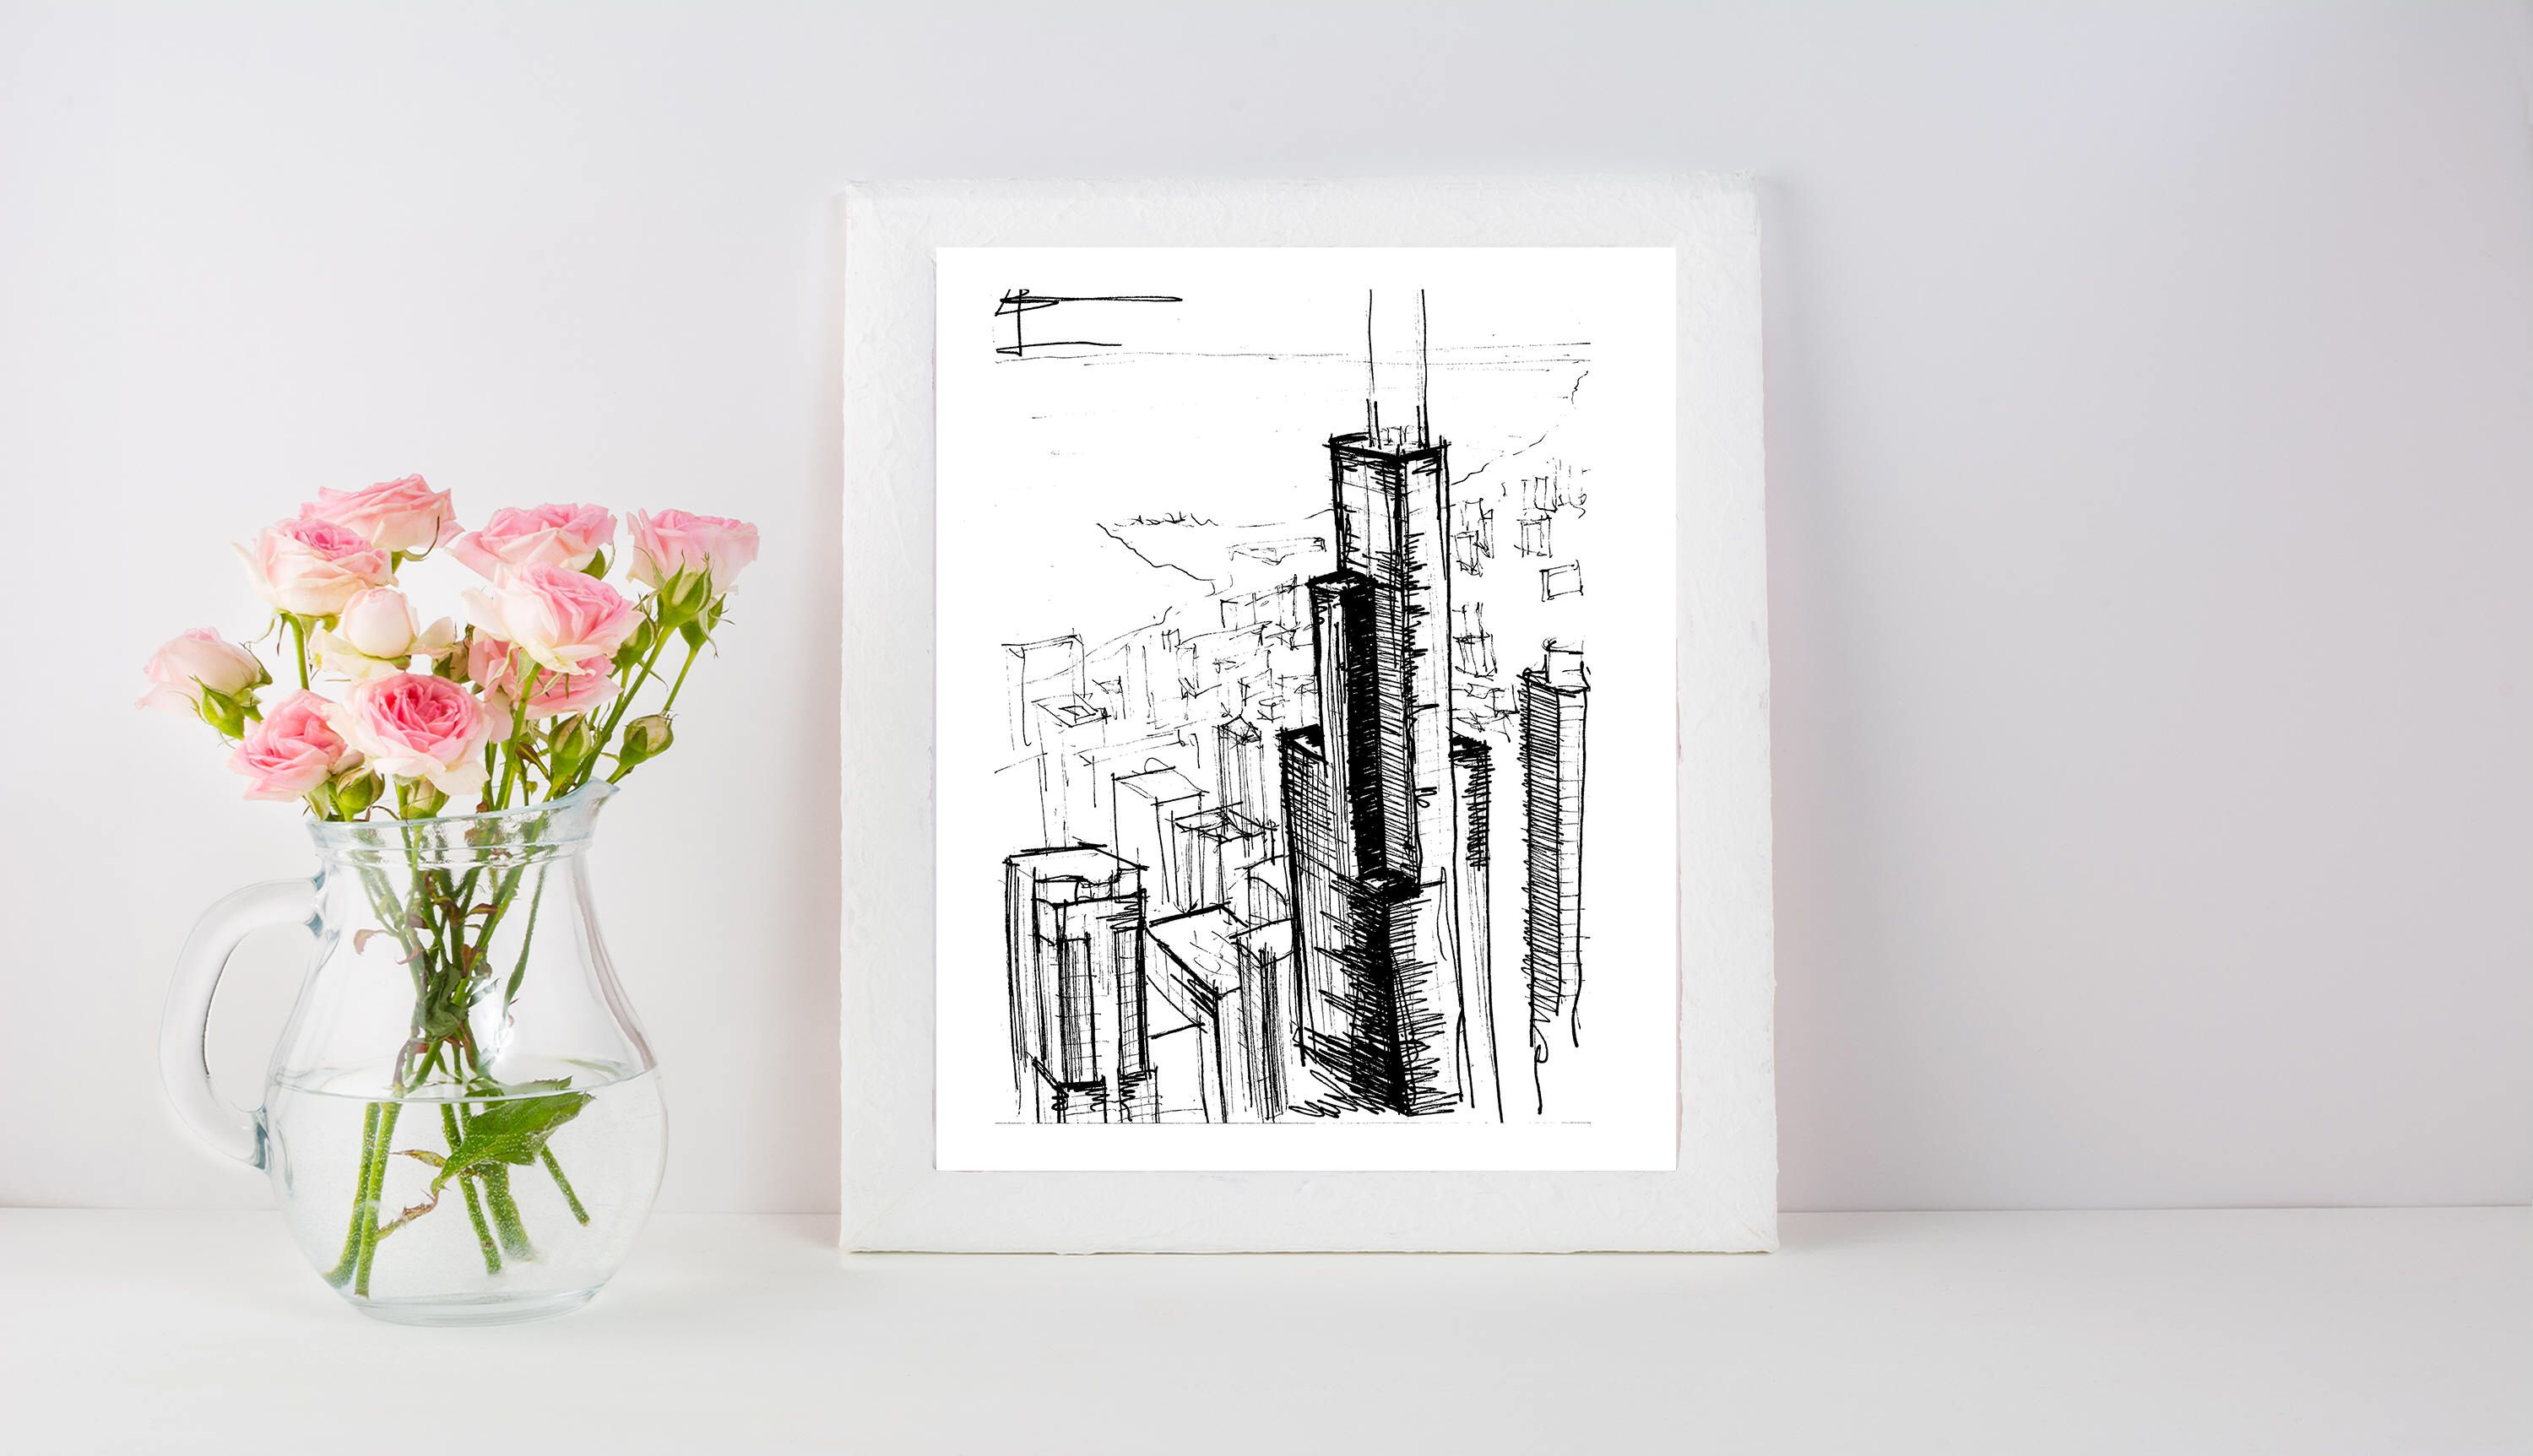 Chicago Skyline Architecture Sketch | Original artwork | Architectural drawing | Pen and Ink by hand | 8x10 Wall Print by IlerCreative on Etsy https://www.etsy.com/listing/540431229/chicago-skyline-architecture-sketch